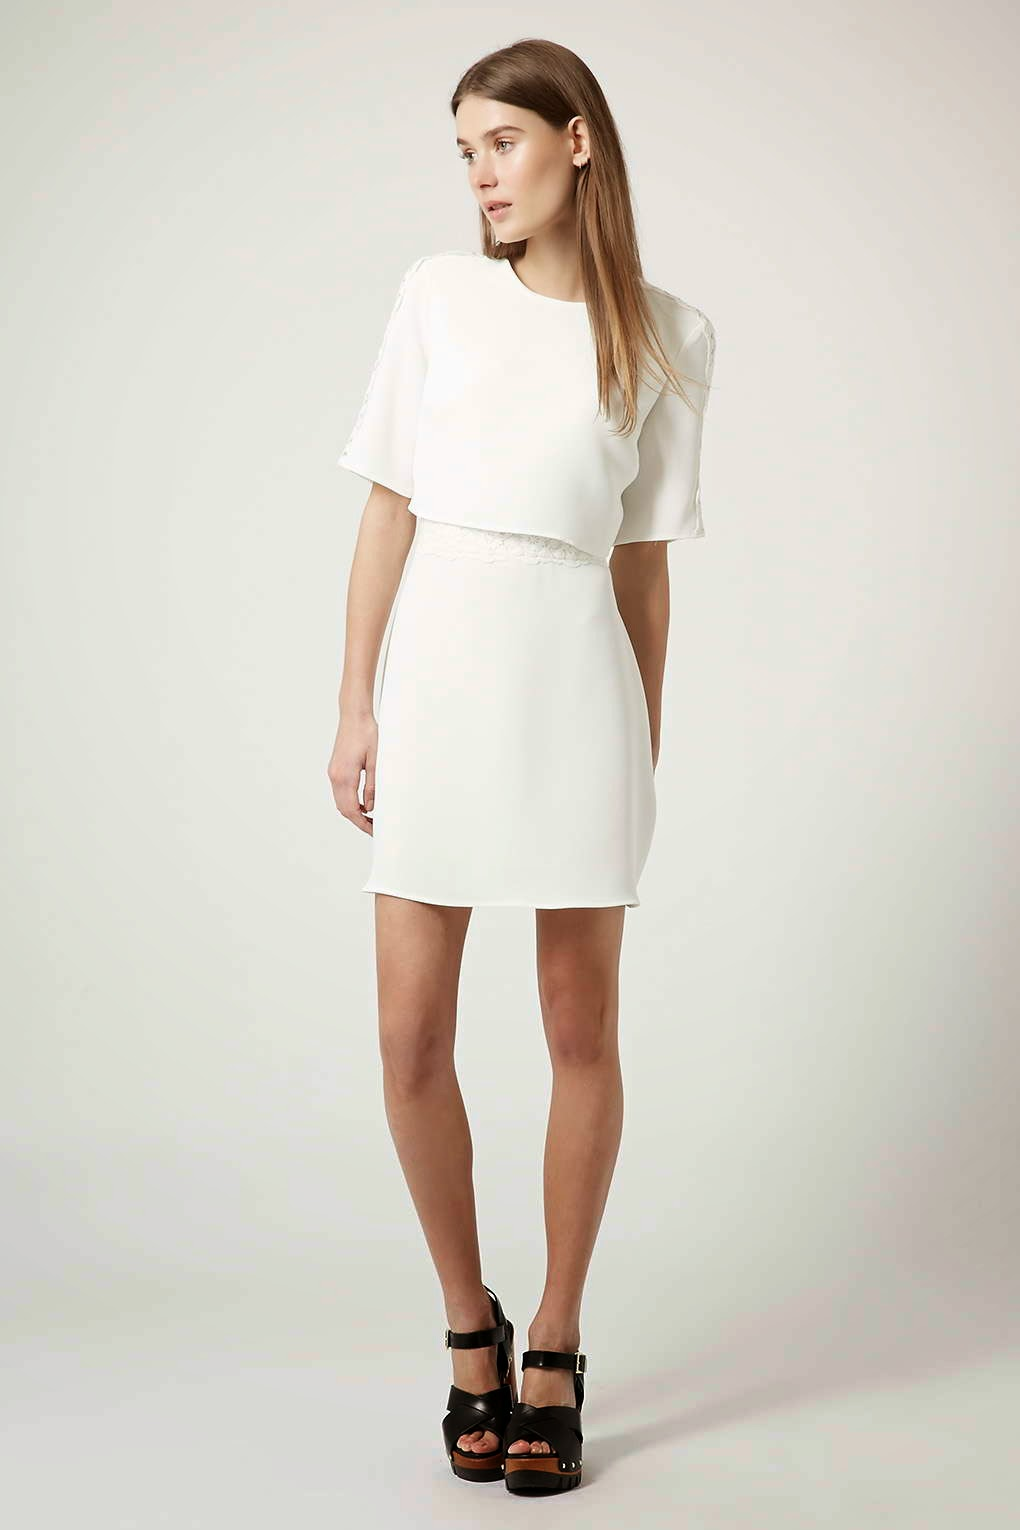 topshop white panel dress,